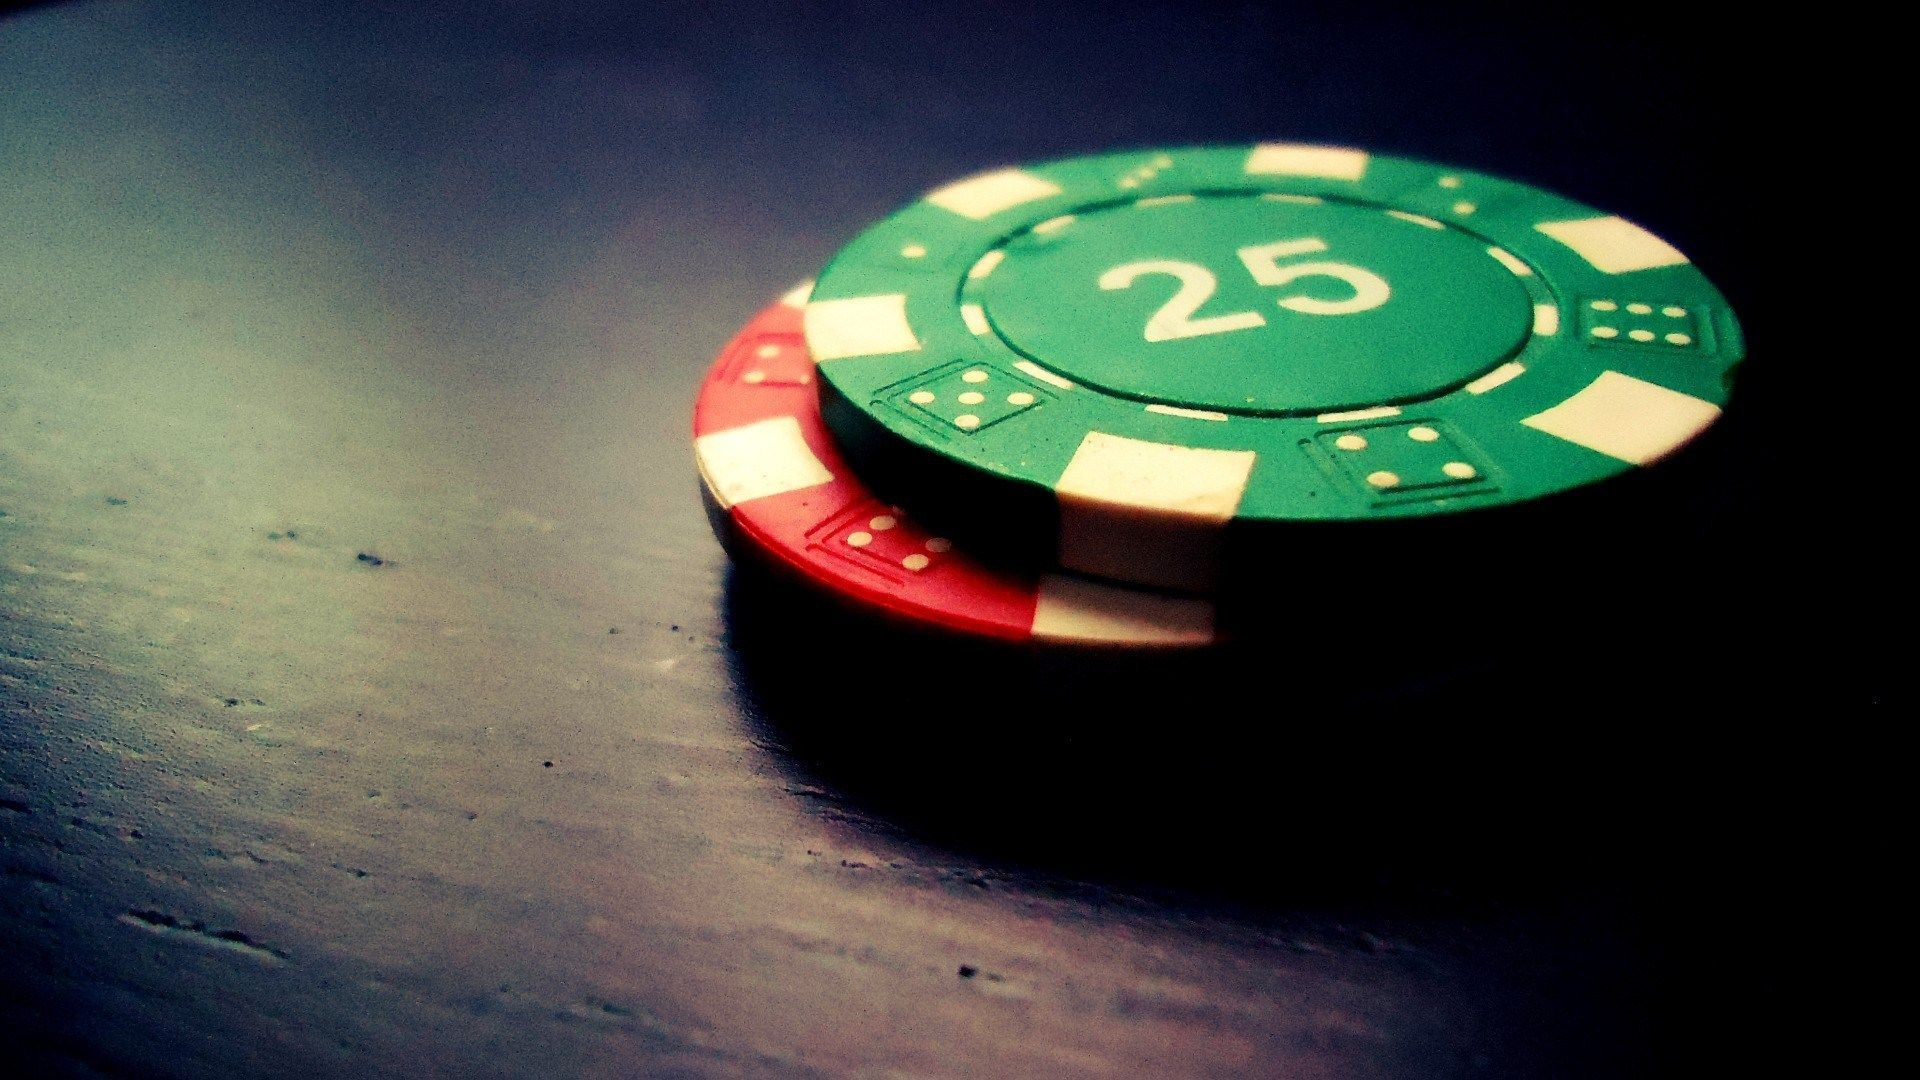 Goals of playing poker online